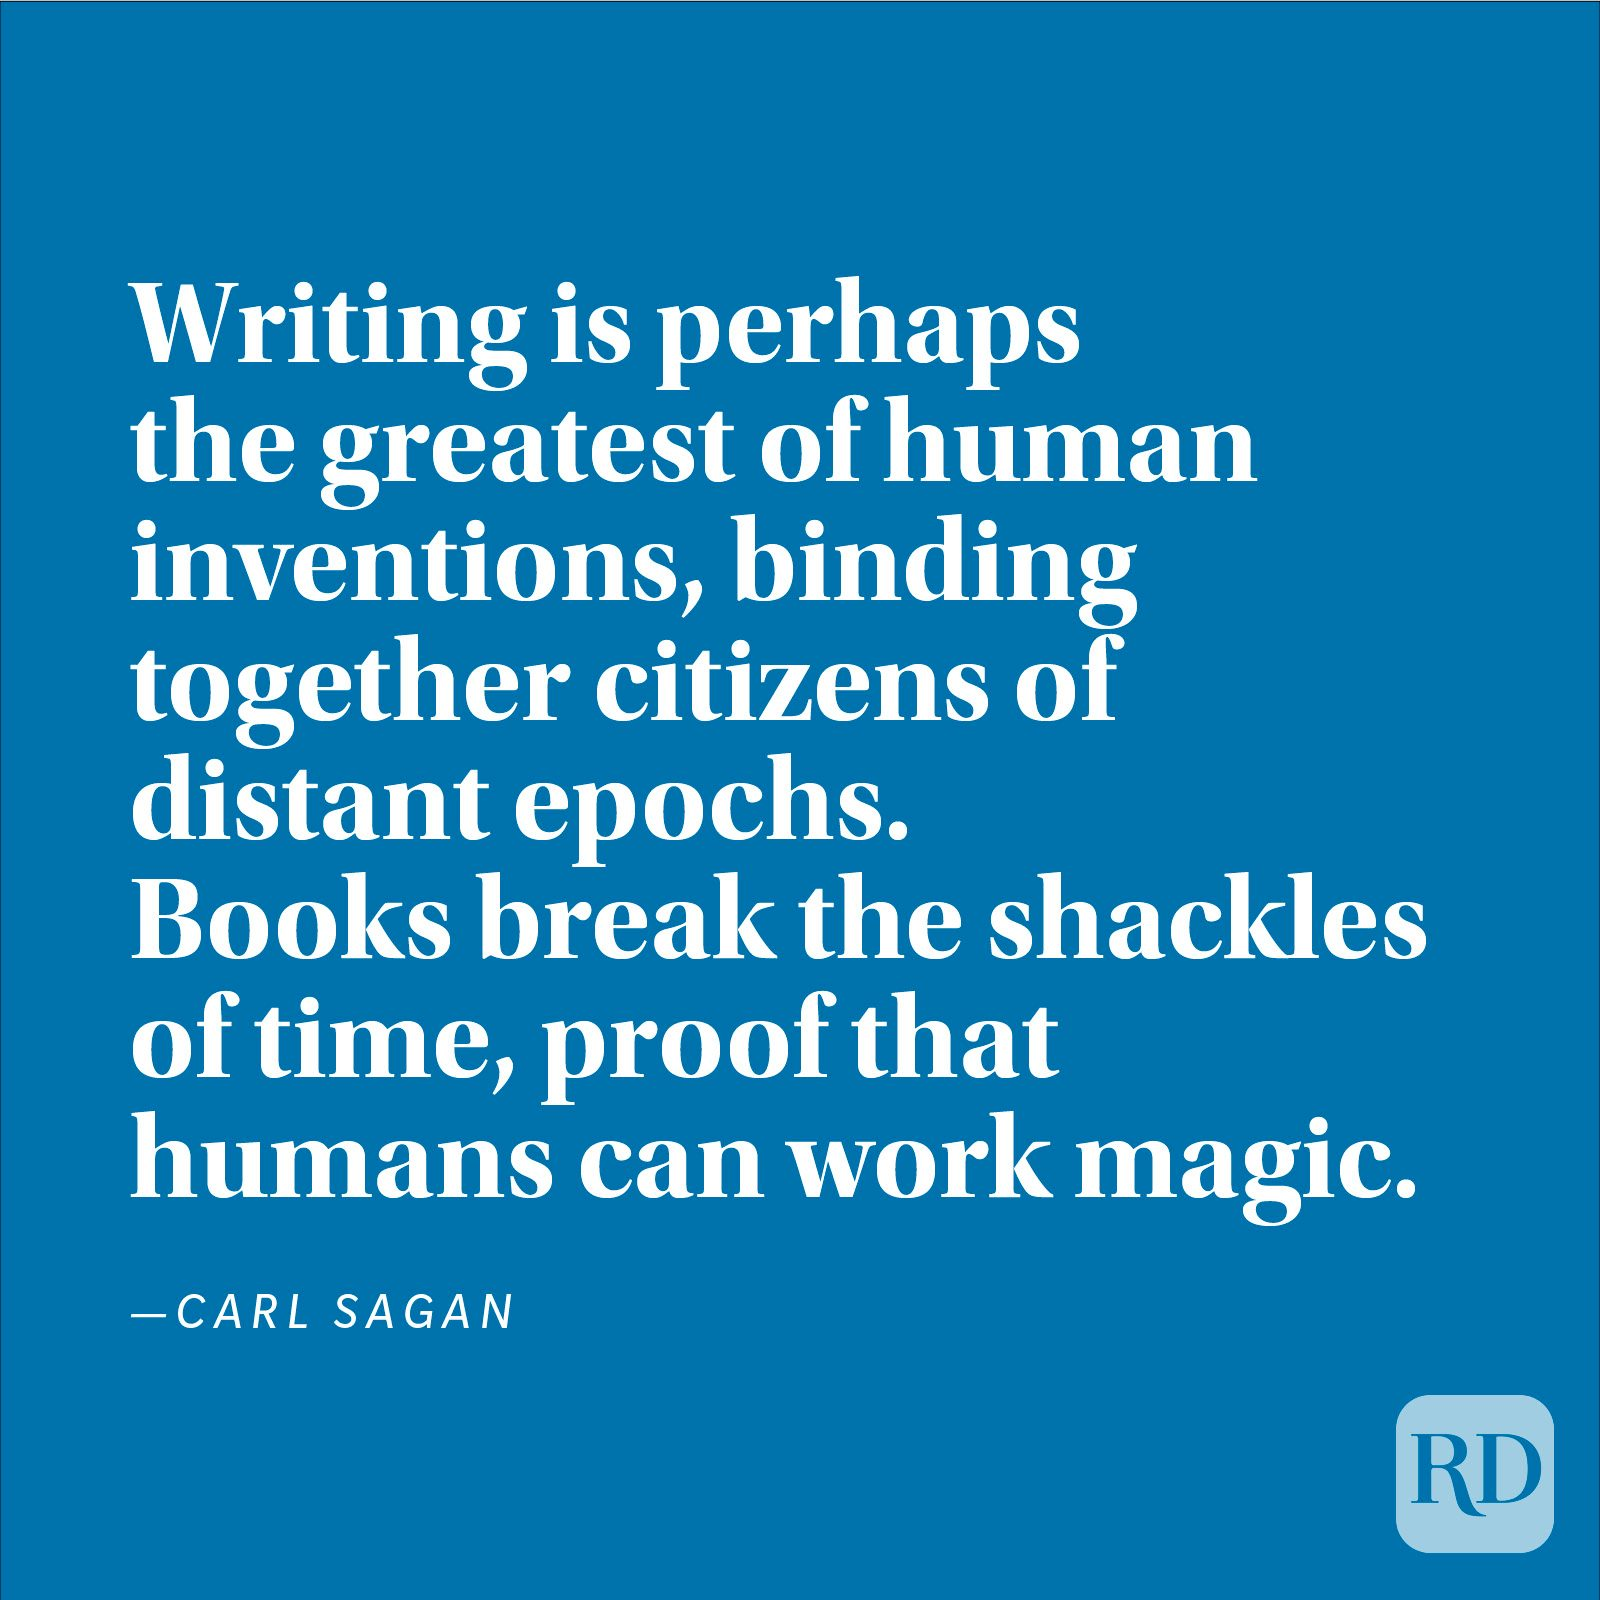 """Writing is perhaps the greatest of human inventions, binding together citizens of distant epochs. Books break the shackles of time, proof that humans can work magic."" —Carl Sagan"